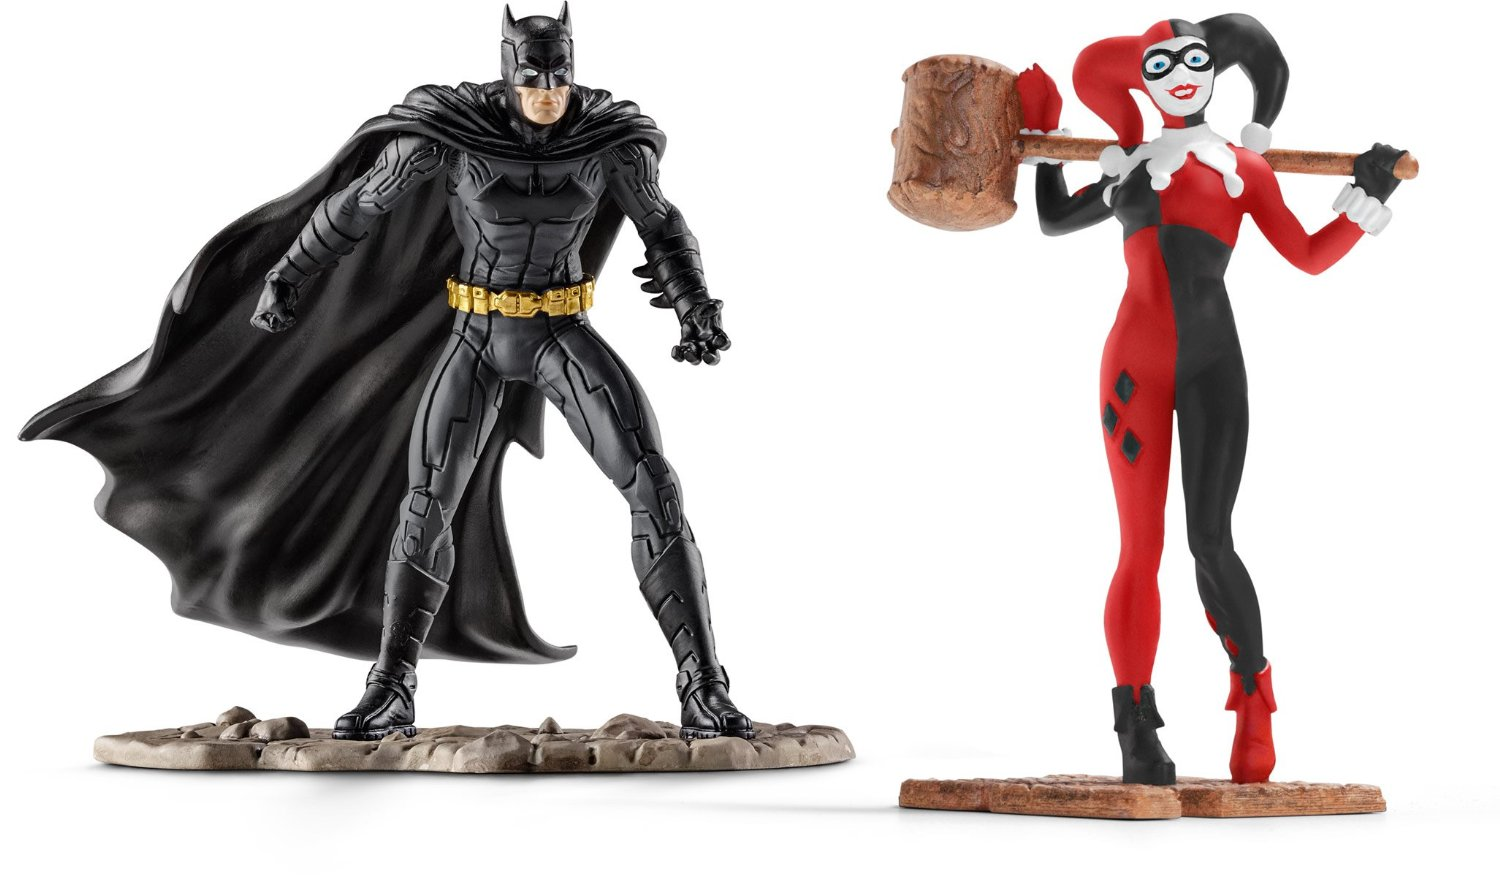 Schleich 22514 Batman Vs Harley Quinn Scenery Pack3